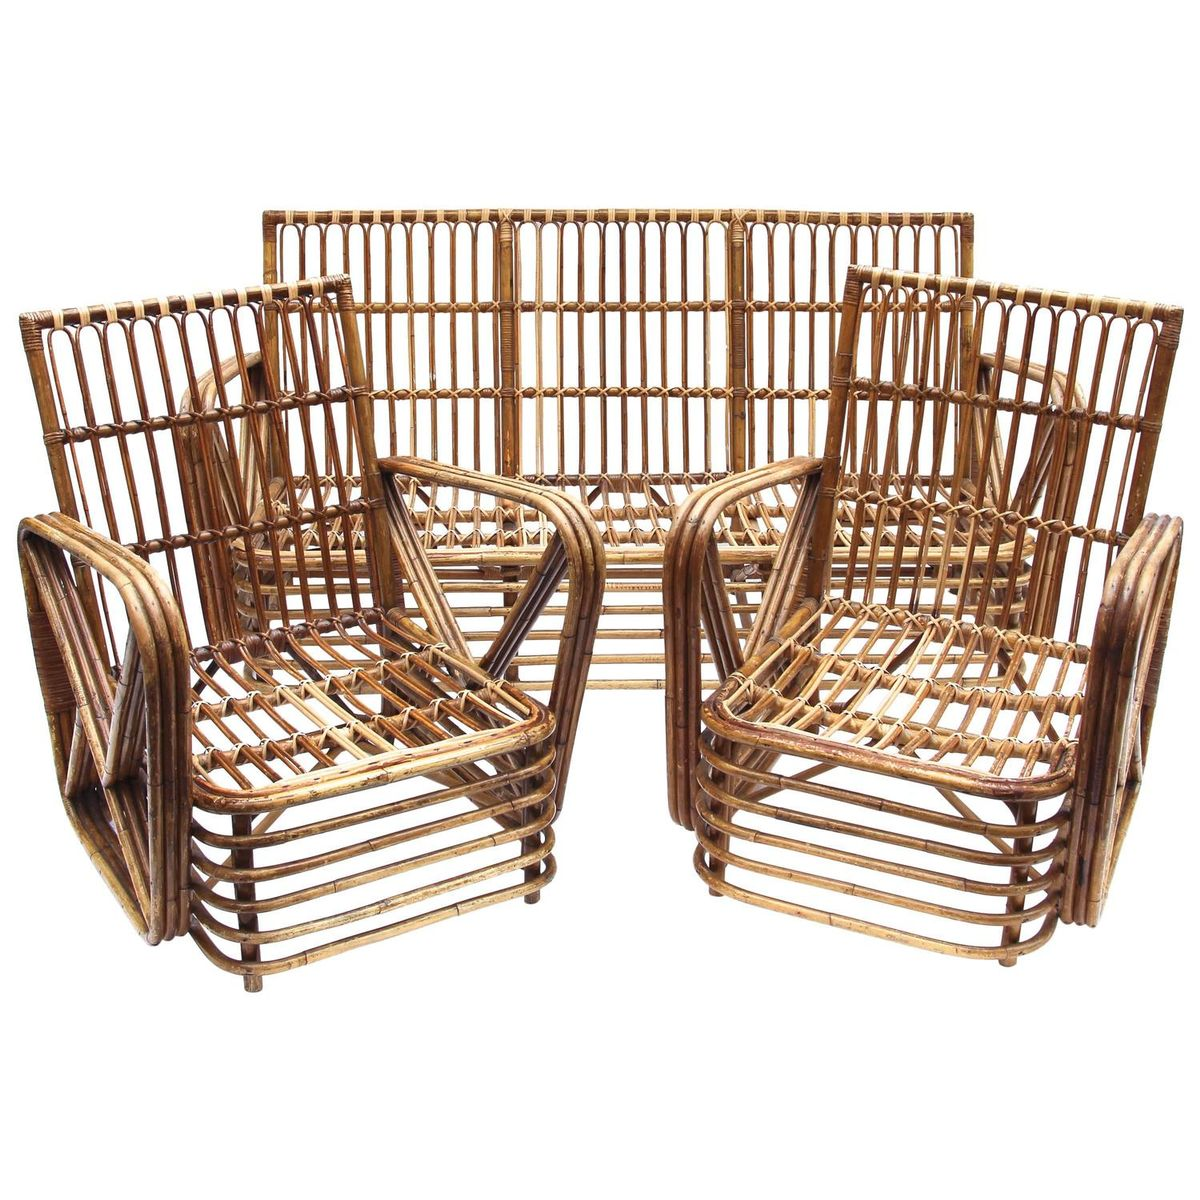 italian bamboo living room set from dal vera 1970s for sale at pamono. Black Bedroom Furniture Sets. Home Design Ideas